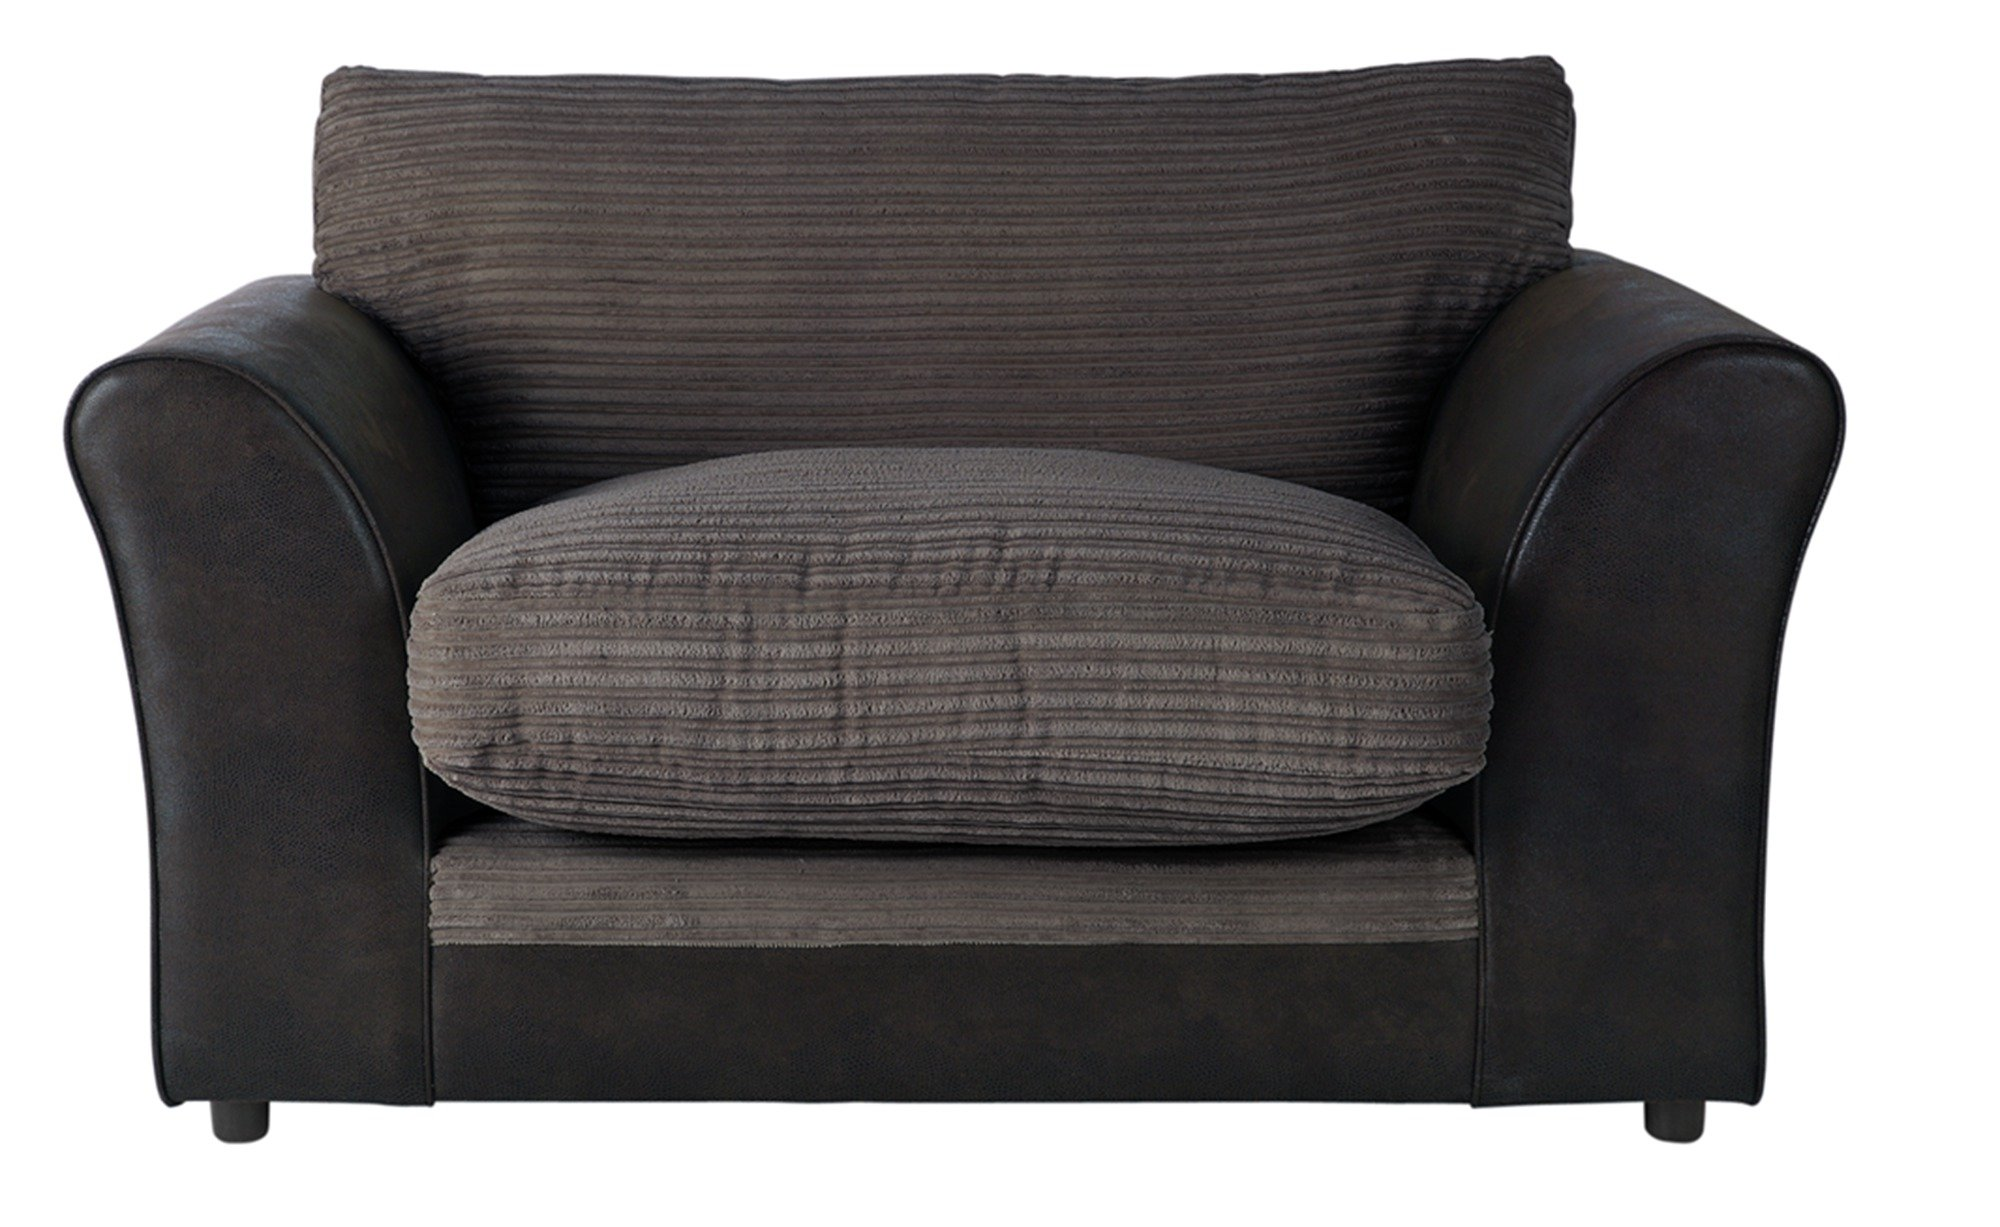 Argos Home Harley Fabric Cuddle Chair - Charcoal